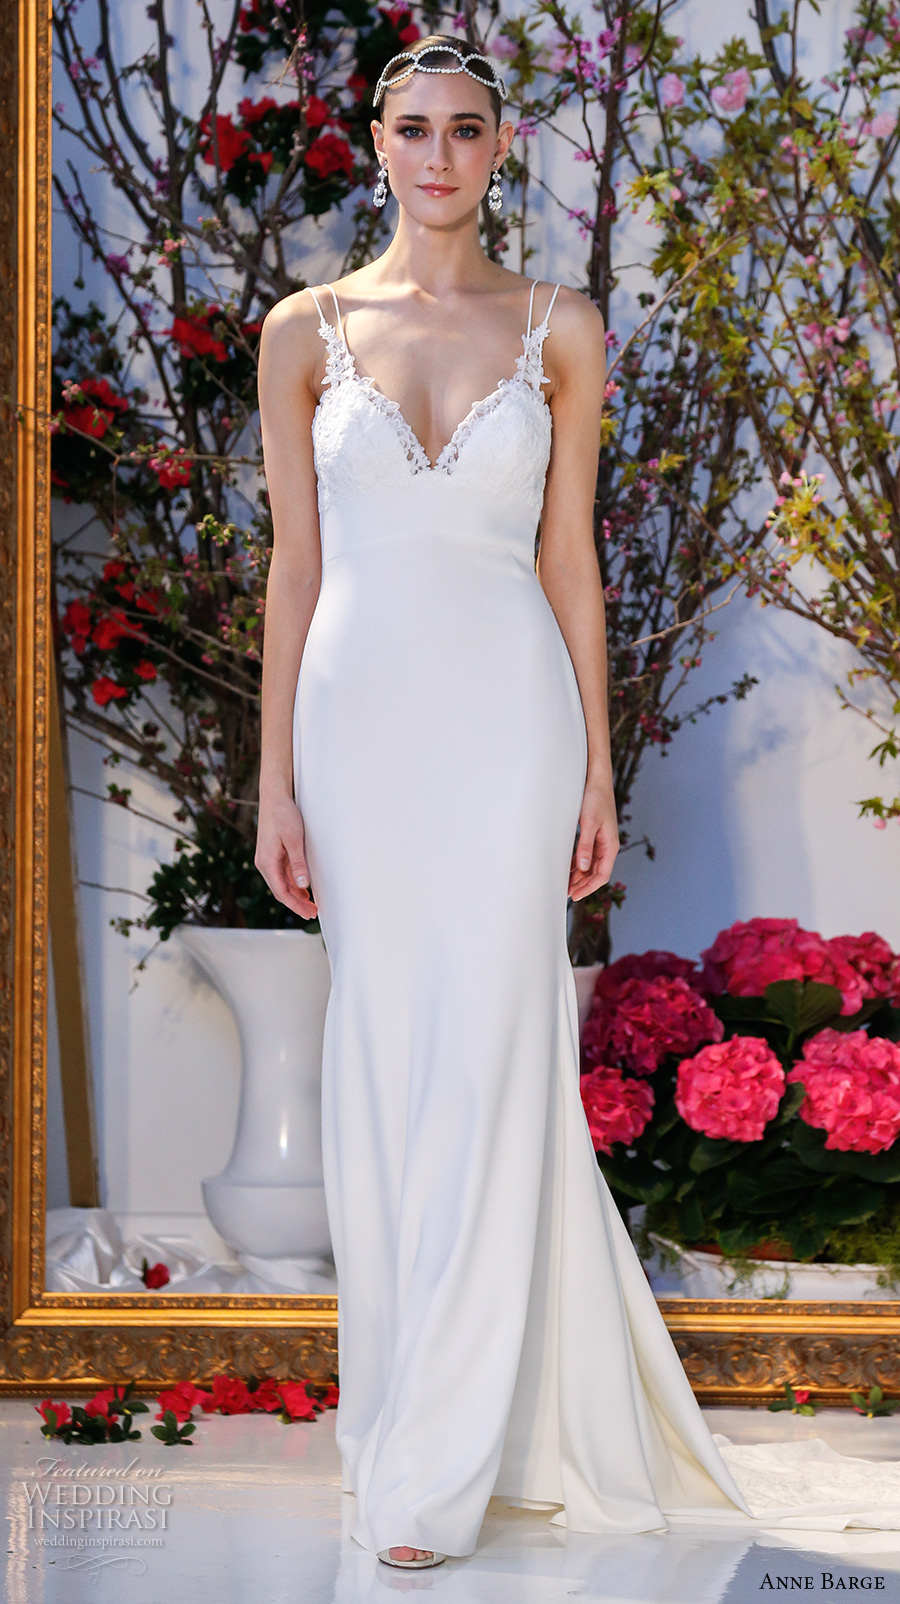 anne barge spring 2017 bridal sleeveless spagetti strap deep sweetheart neckline embellished bodice simple elegant sheath wedding dress low back sweep train (012) mv